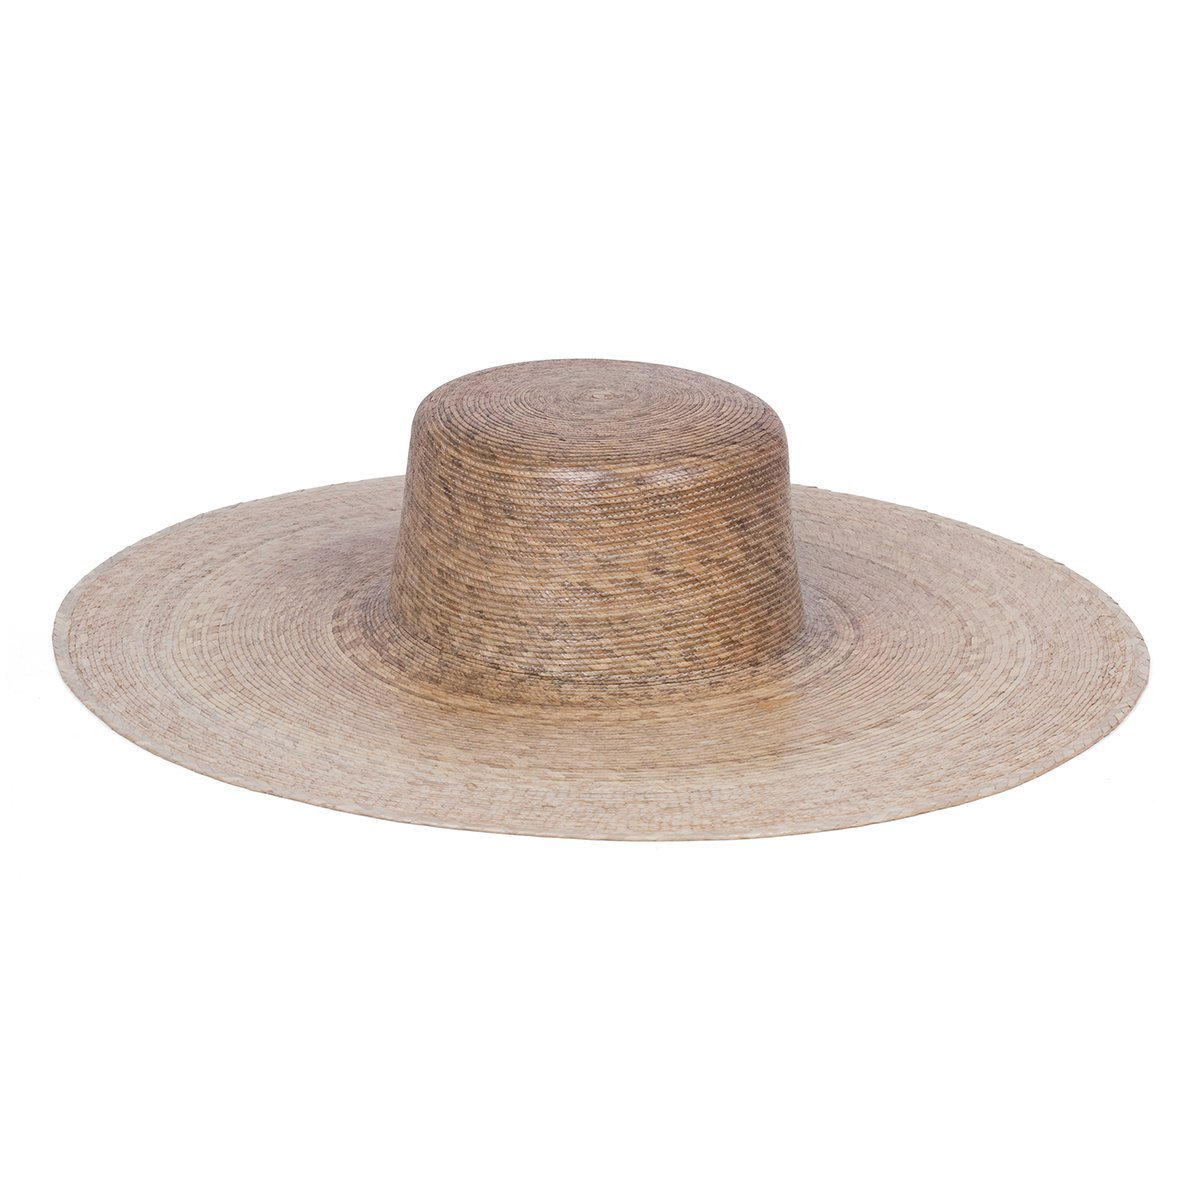 Load image into Gallery viewer, Womens Straw Hats| Palma Ultra Wide Boater Hat by Lack of Color